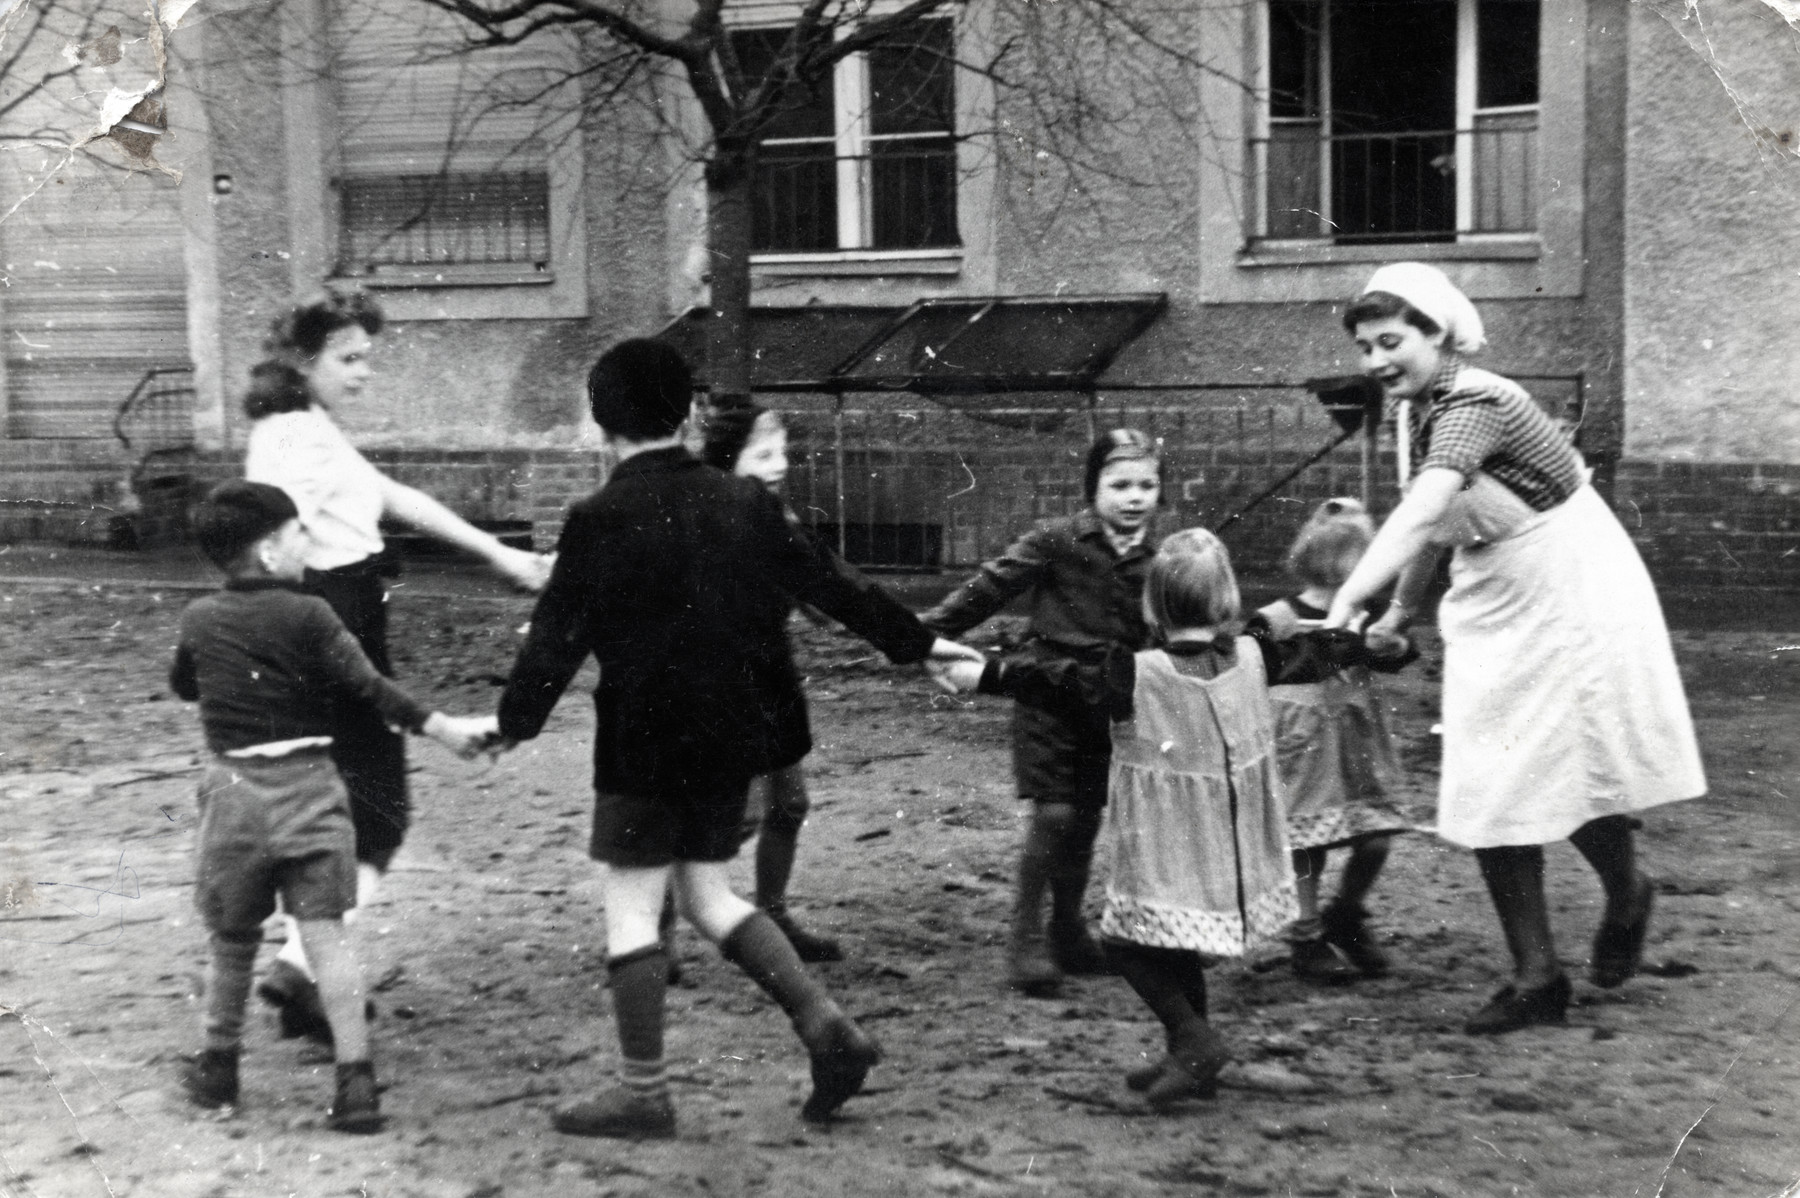 Regina Anders pictured right) plays with children at a day care in postwar Berlin.